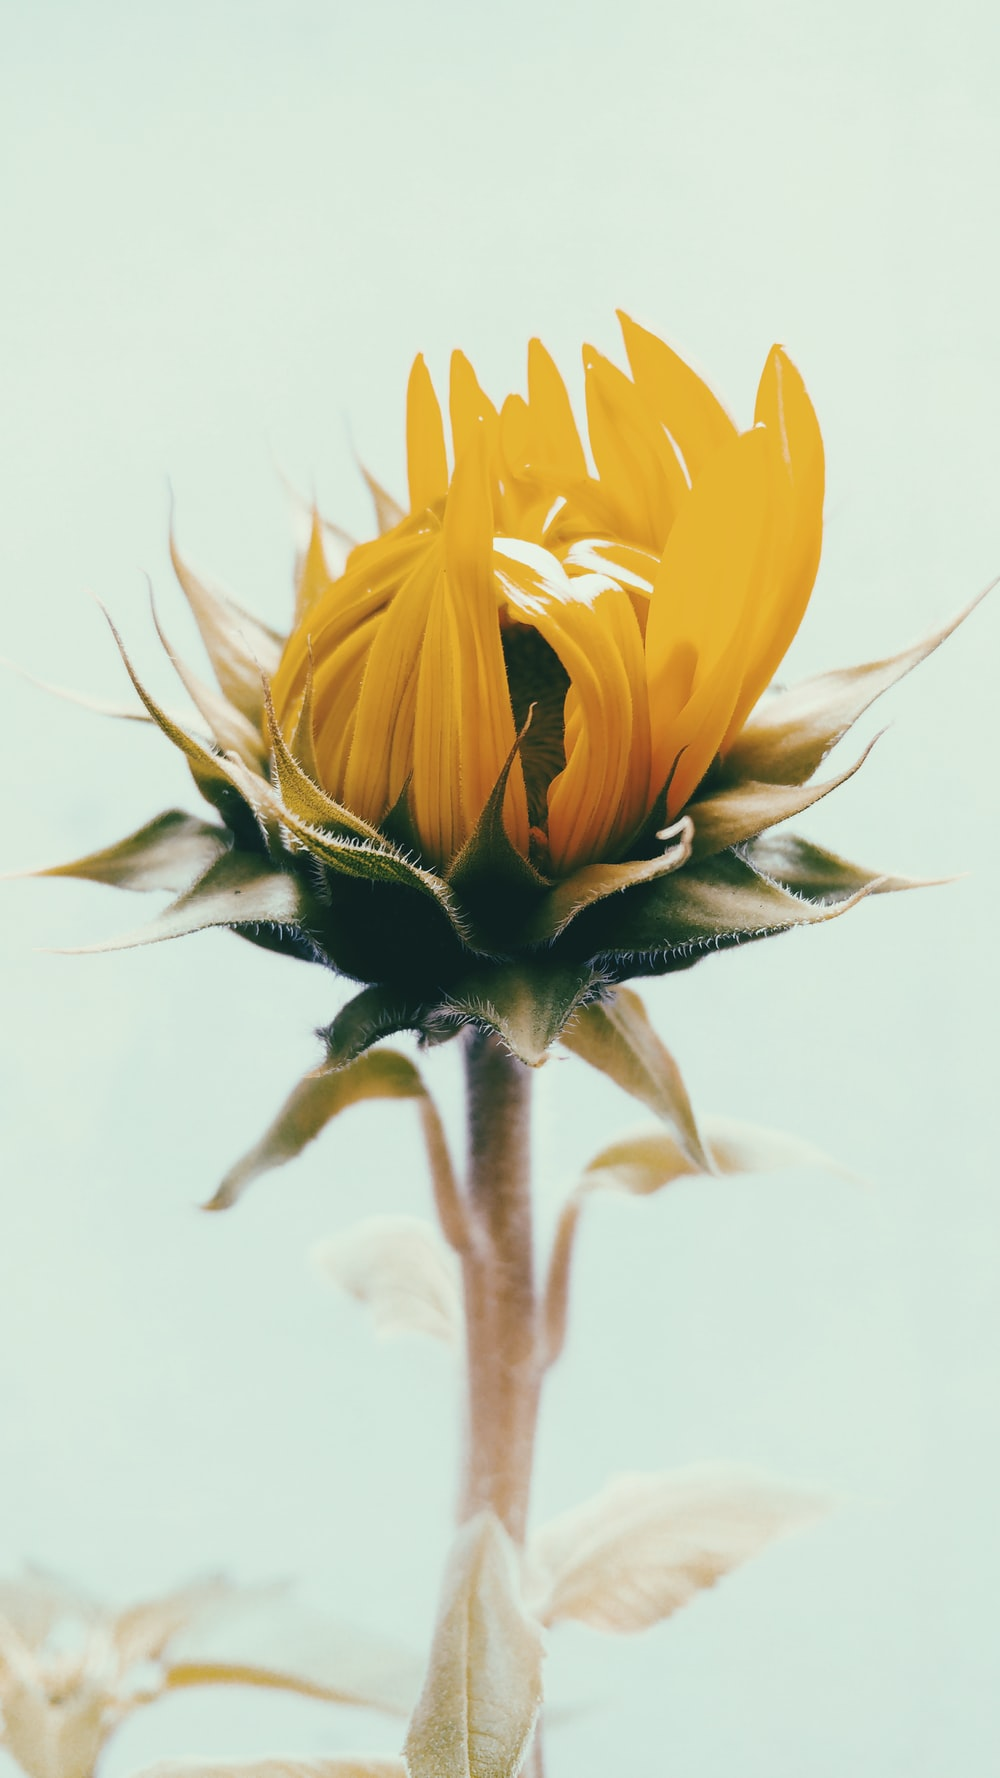 20 sunflower pictures download free images on unsplash sunflower pictures izmirmasajfo